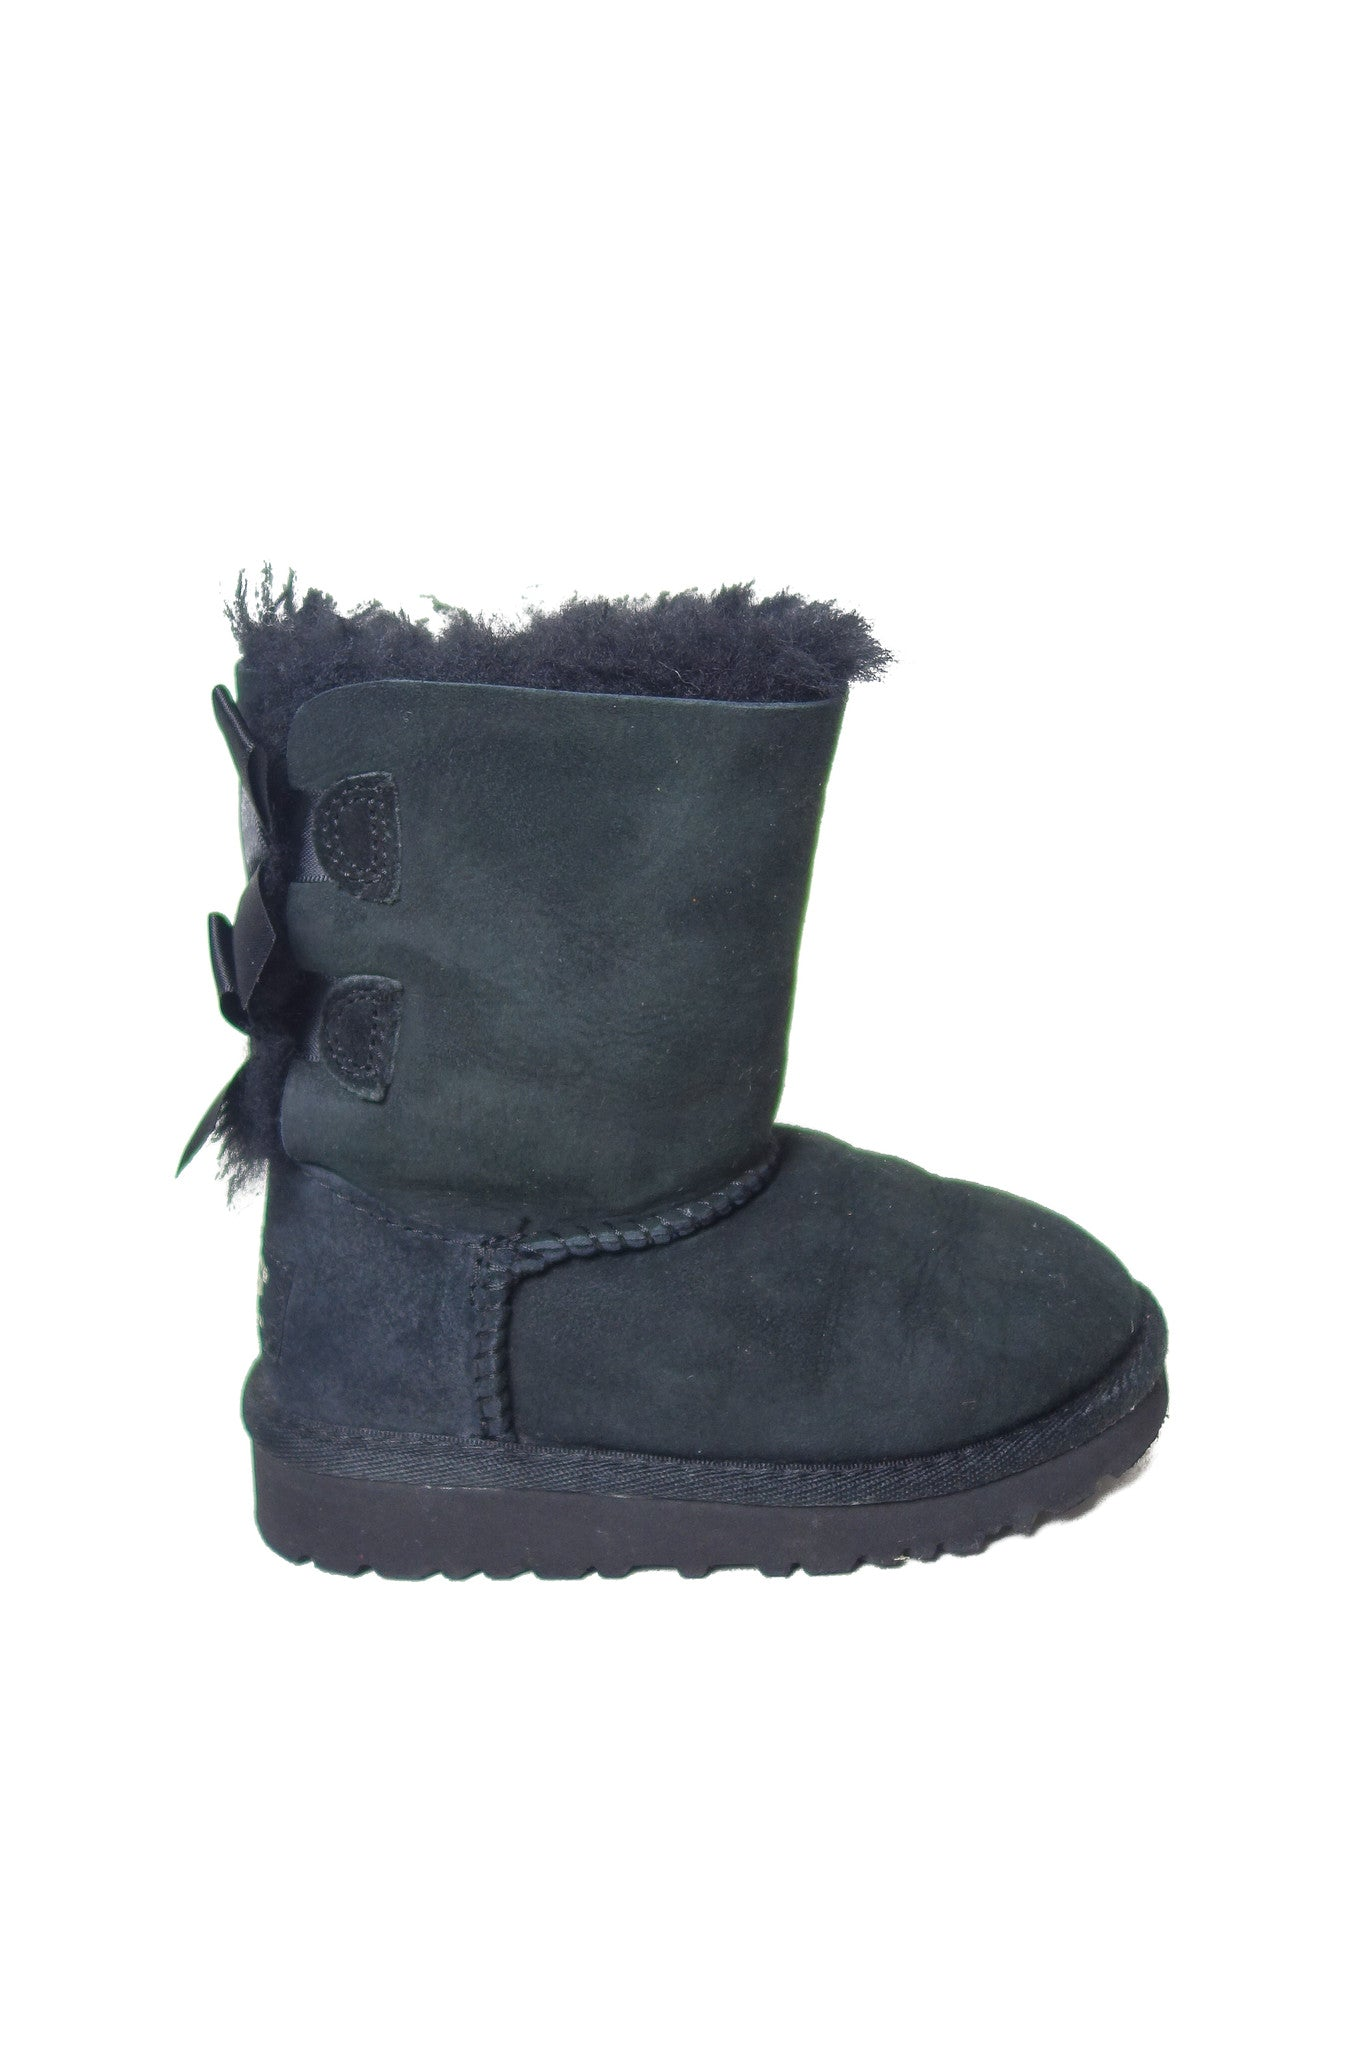 10002641 UGG Kids~Boots 18-24M (US 7) at Retykle